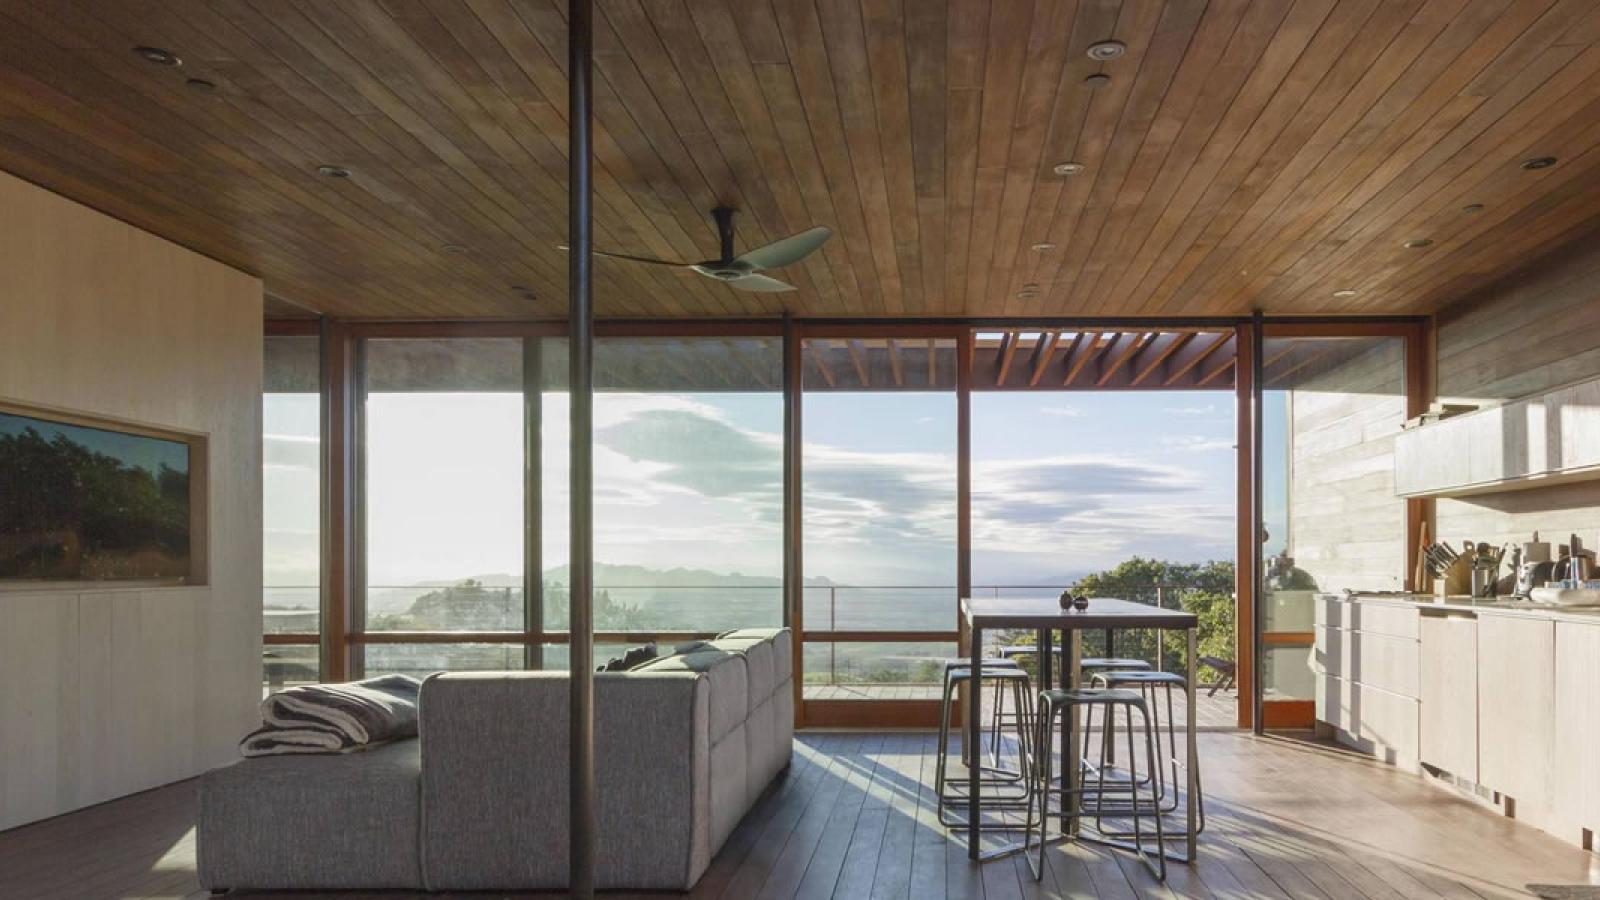 Sonoma WeeHouse, A Beautiful Ultra Minimal Home